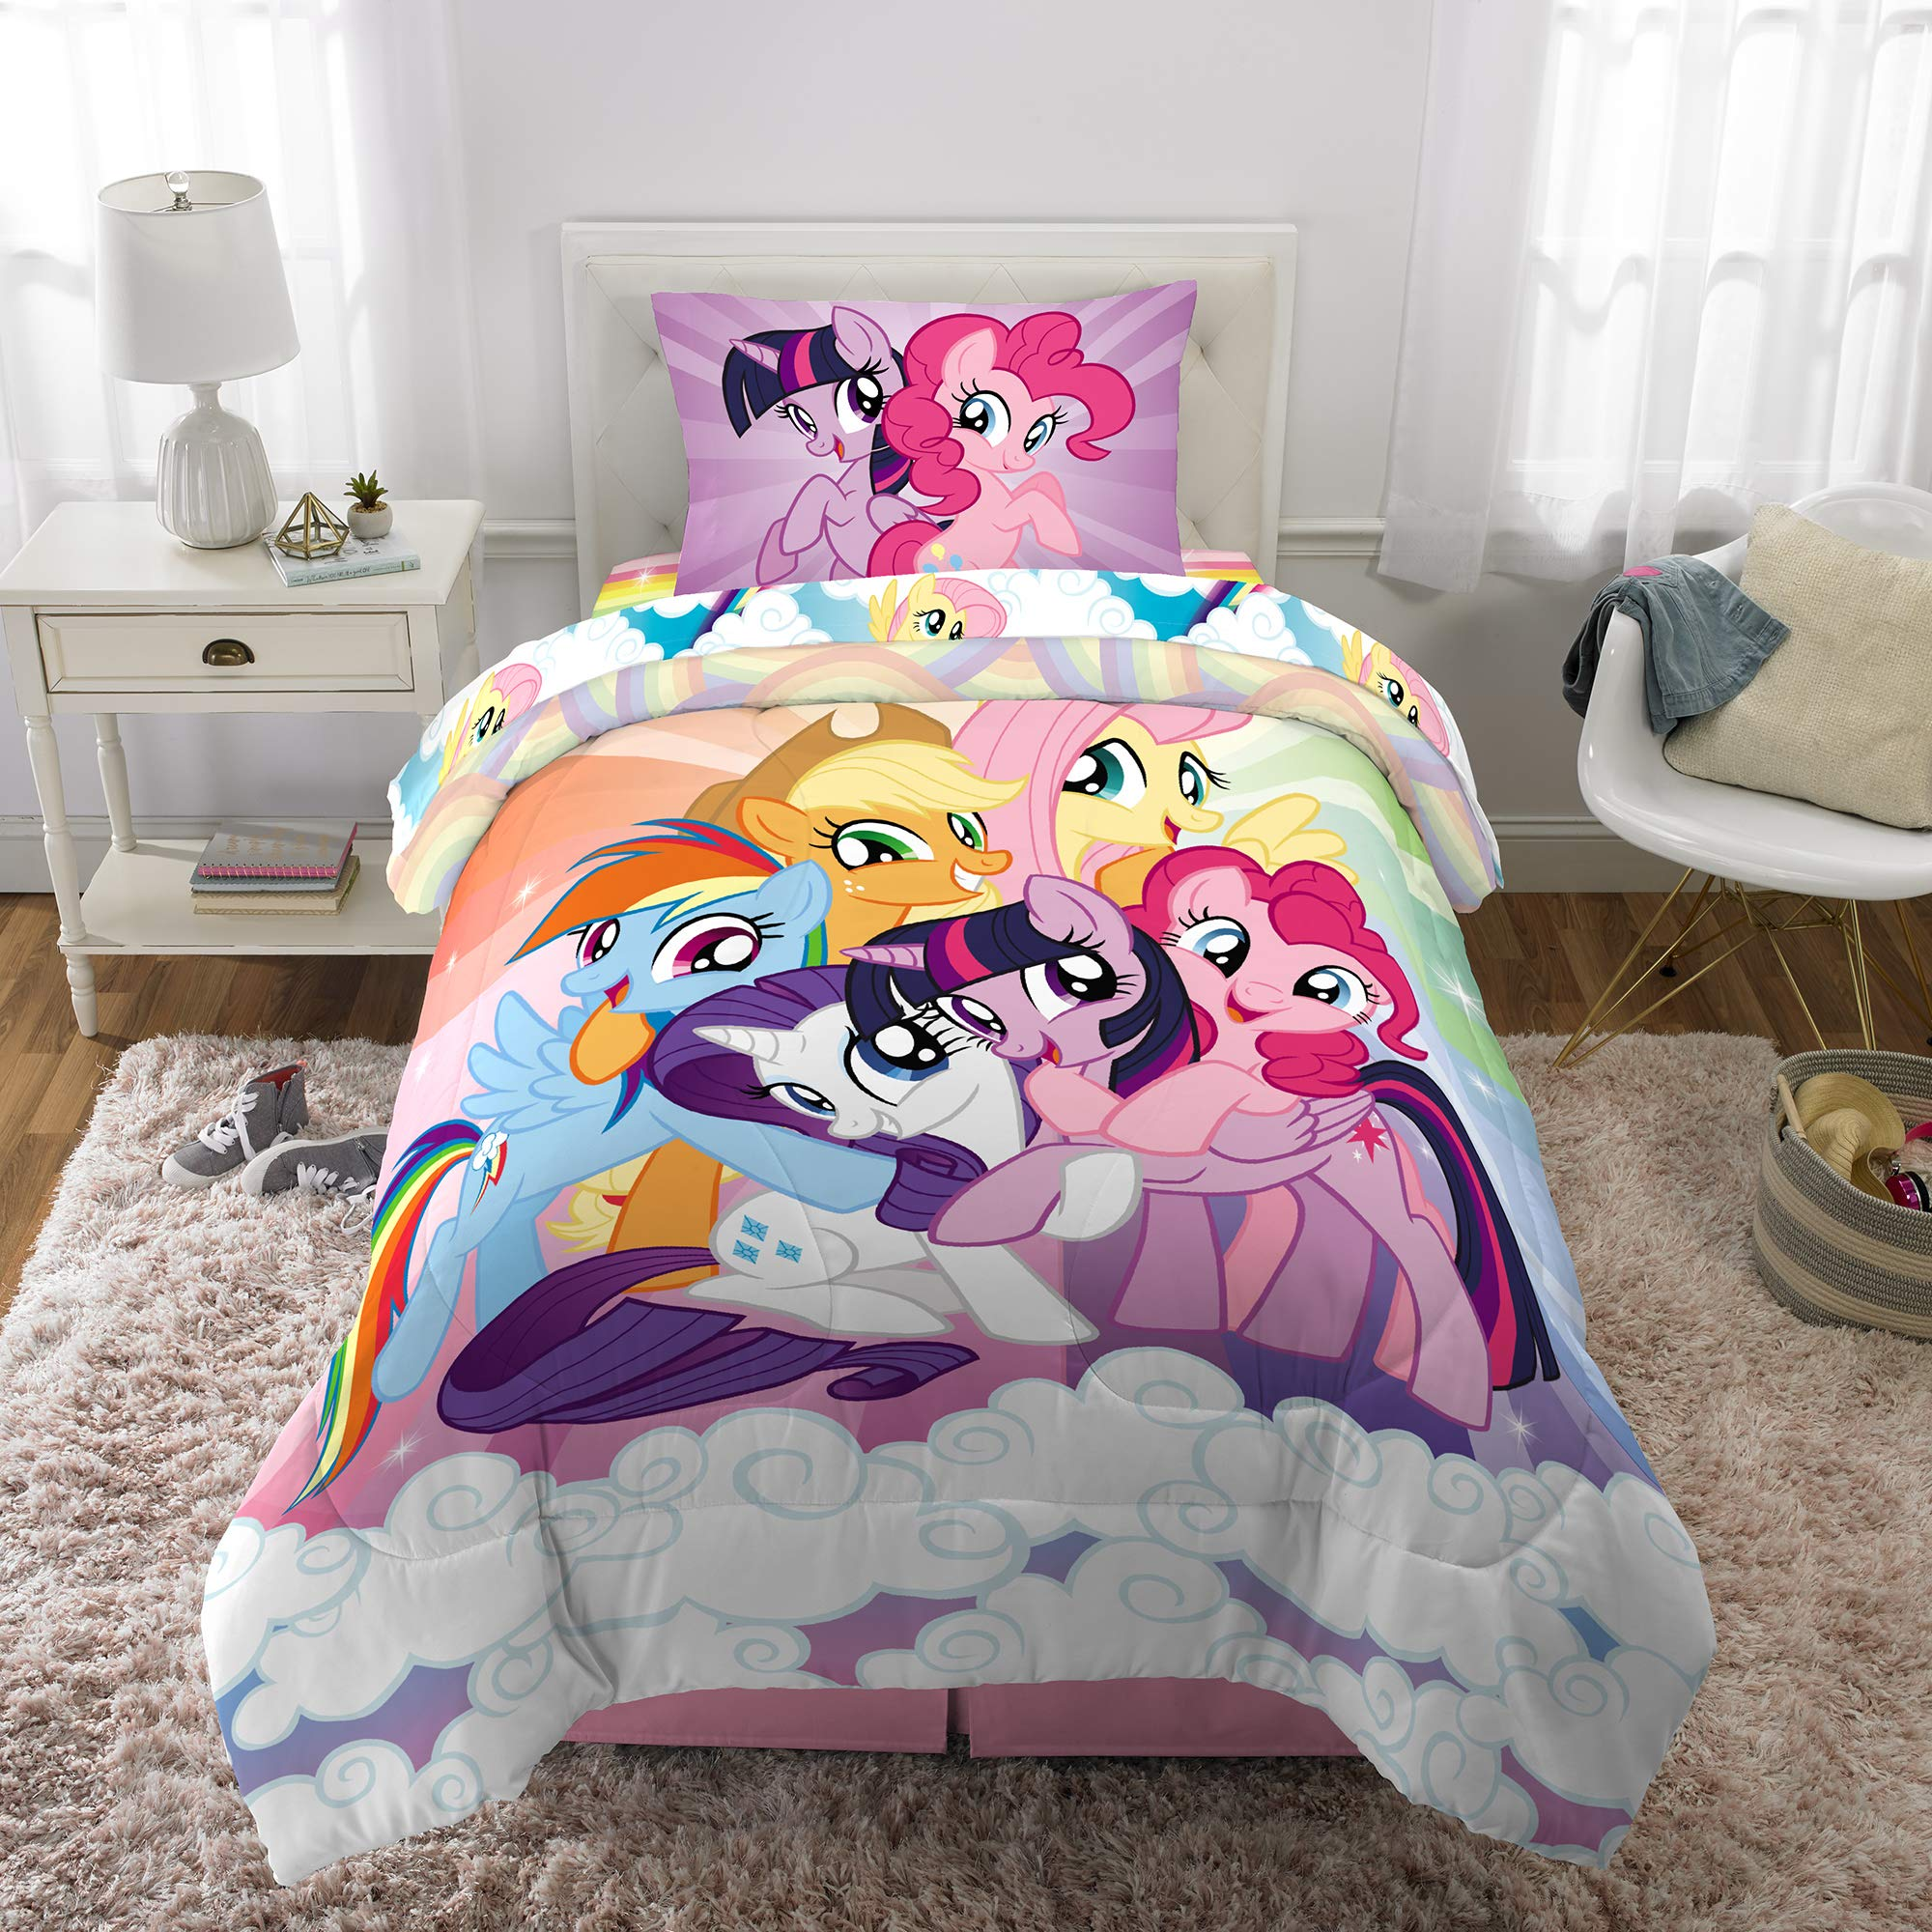 Hasbro My My Little Pony Kids Bedding Soft Microfiber Comforter and Sheet Set, 4 Piece Twin Size, Multi-Color